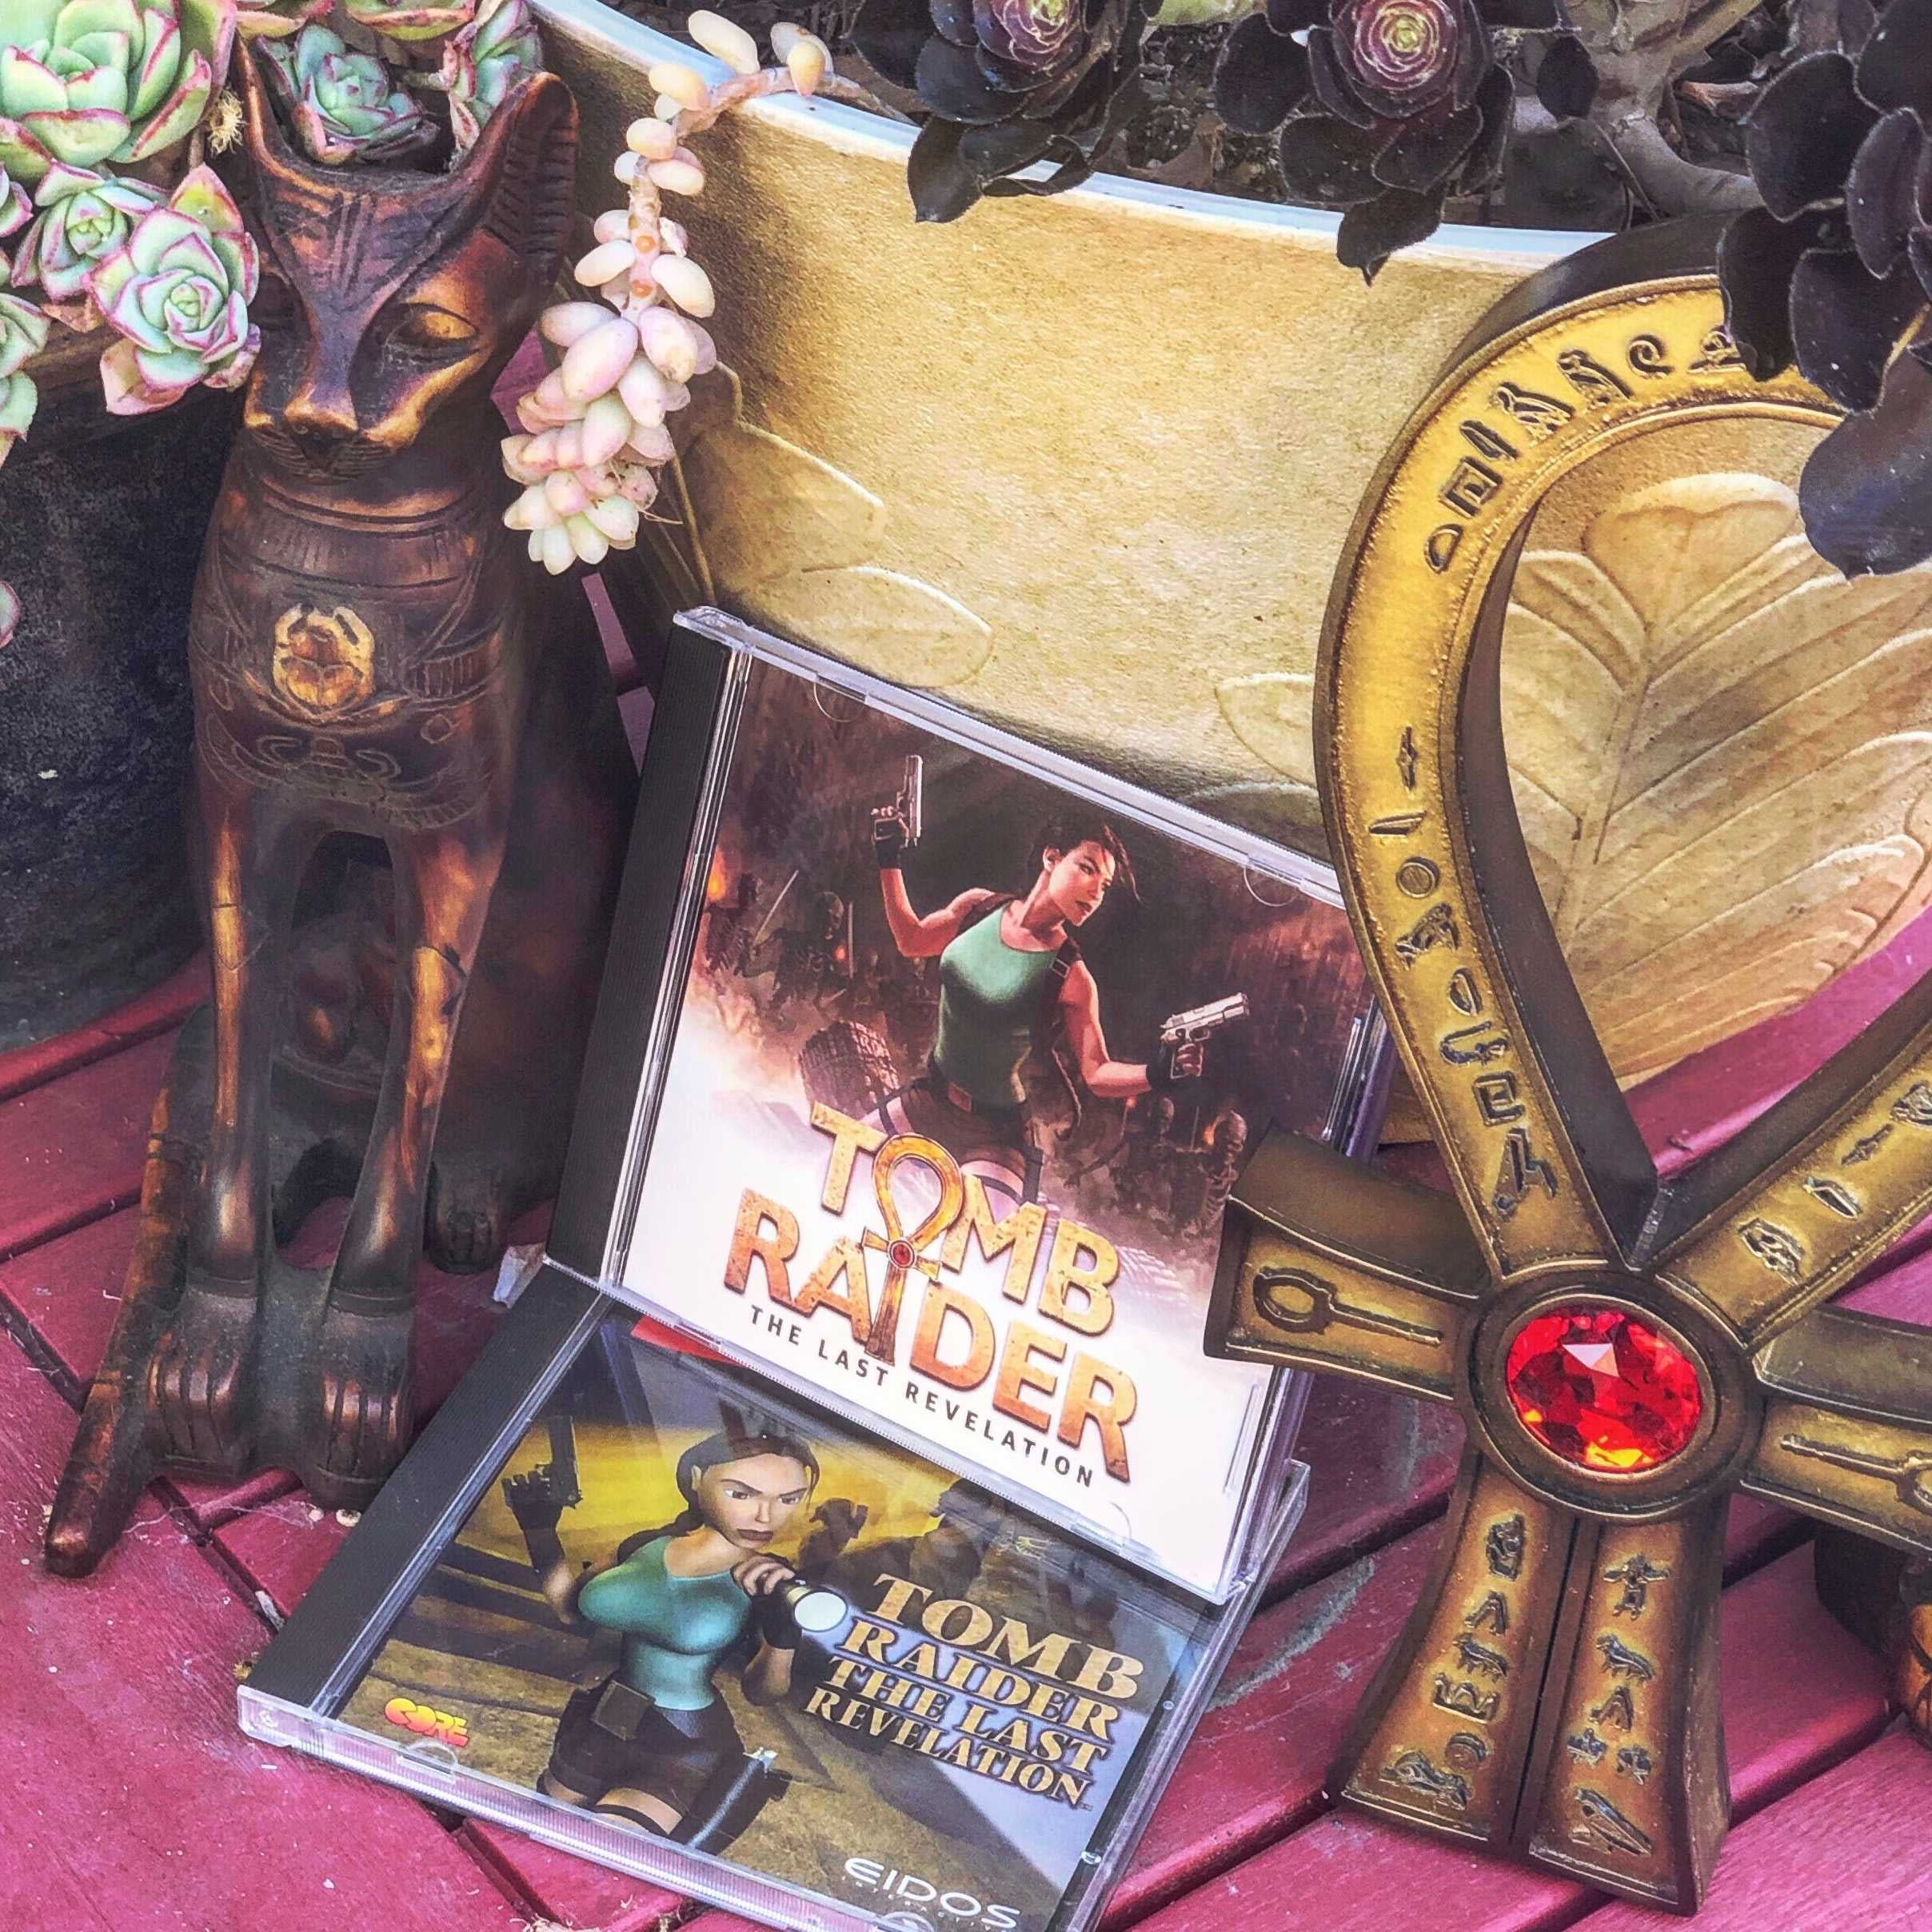 A photo of the new reimagined TRIV box art and original box art in jewel cases. They are next to Sphinx and the Amulet of Horus props.